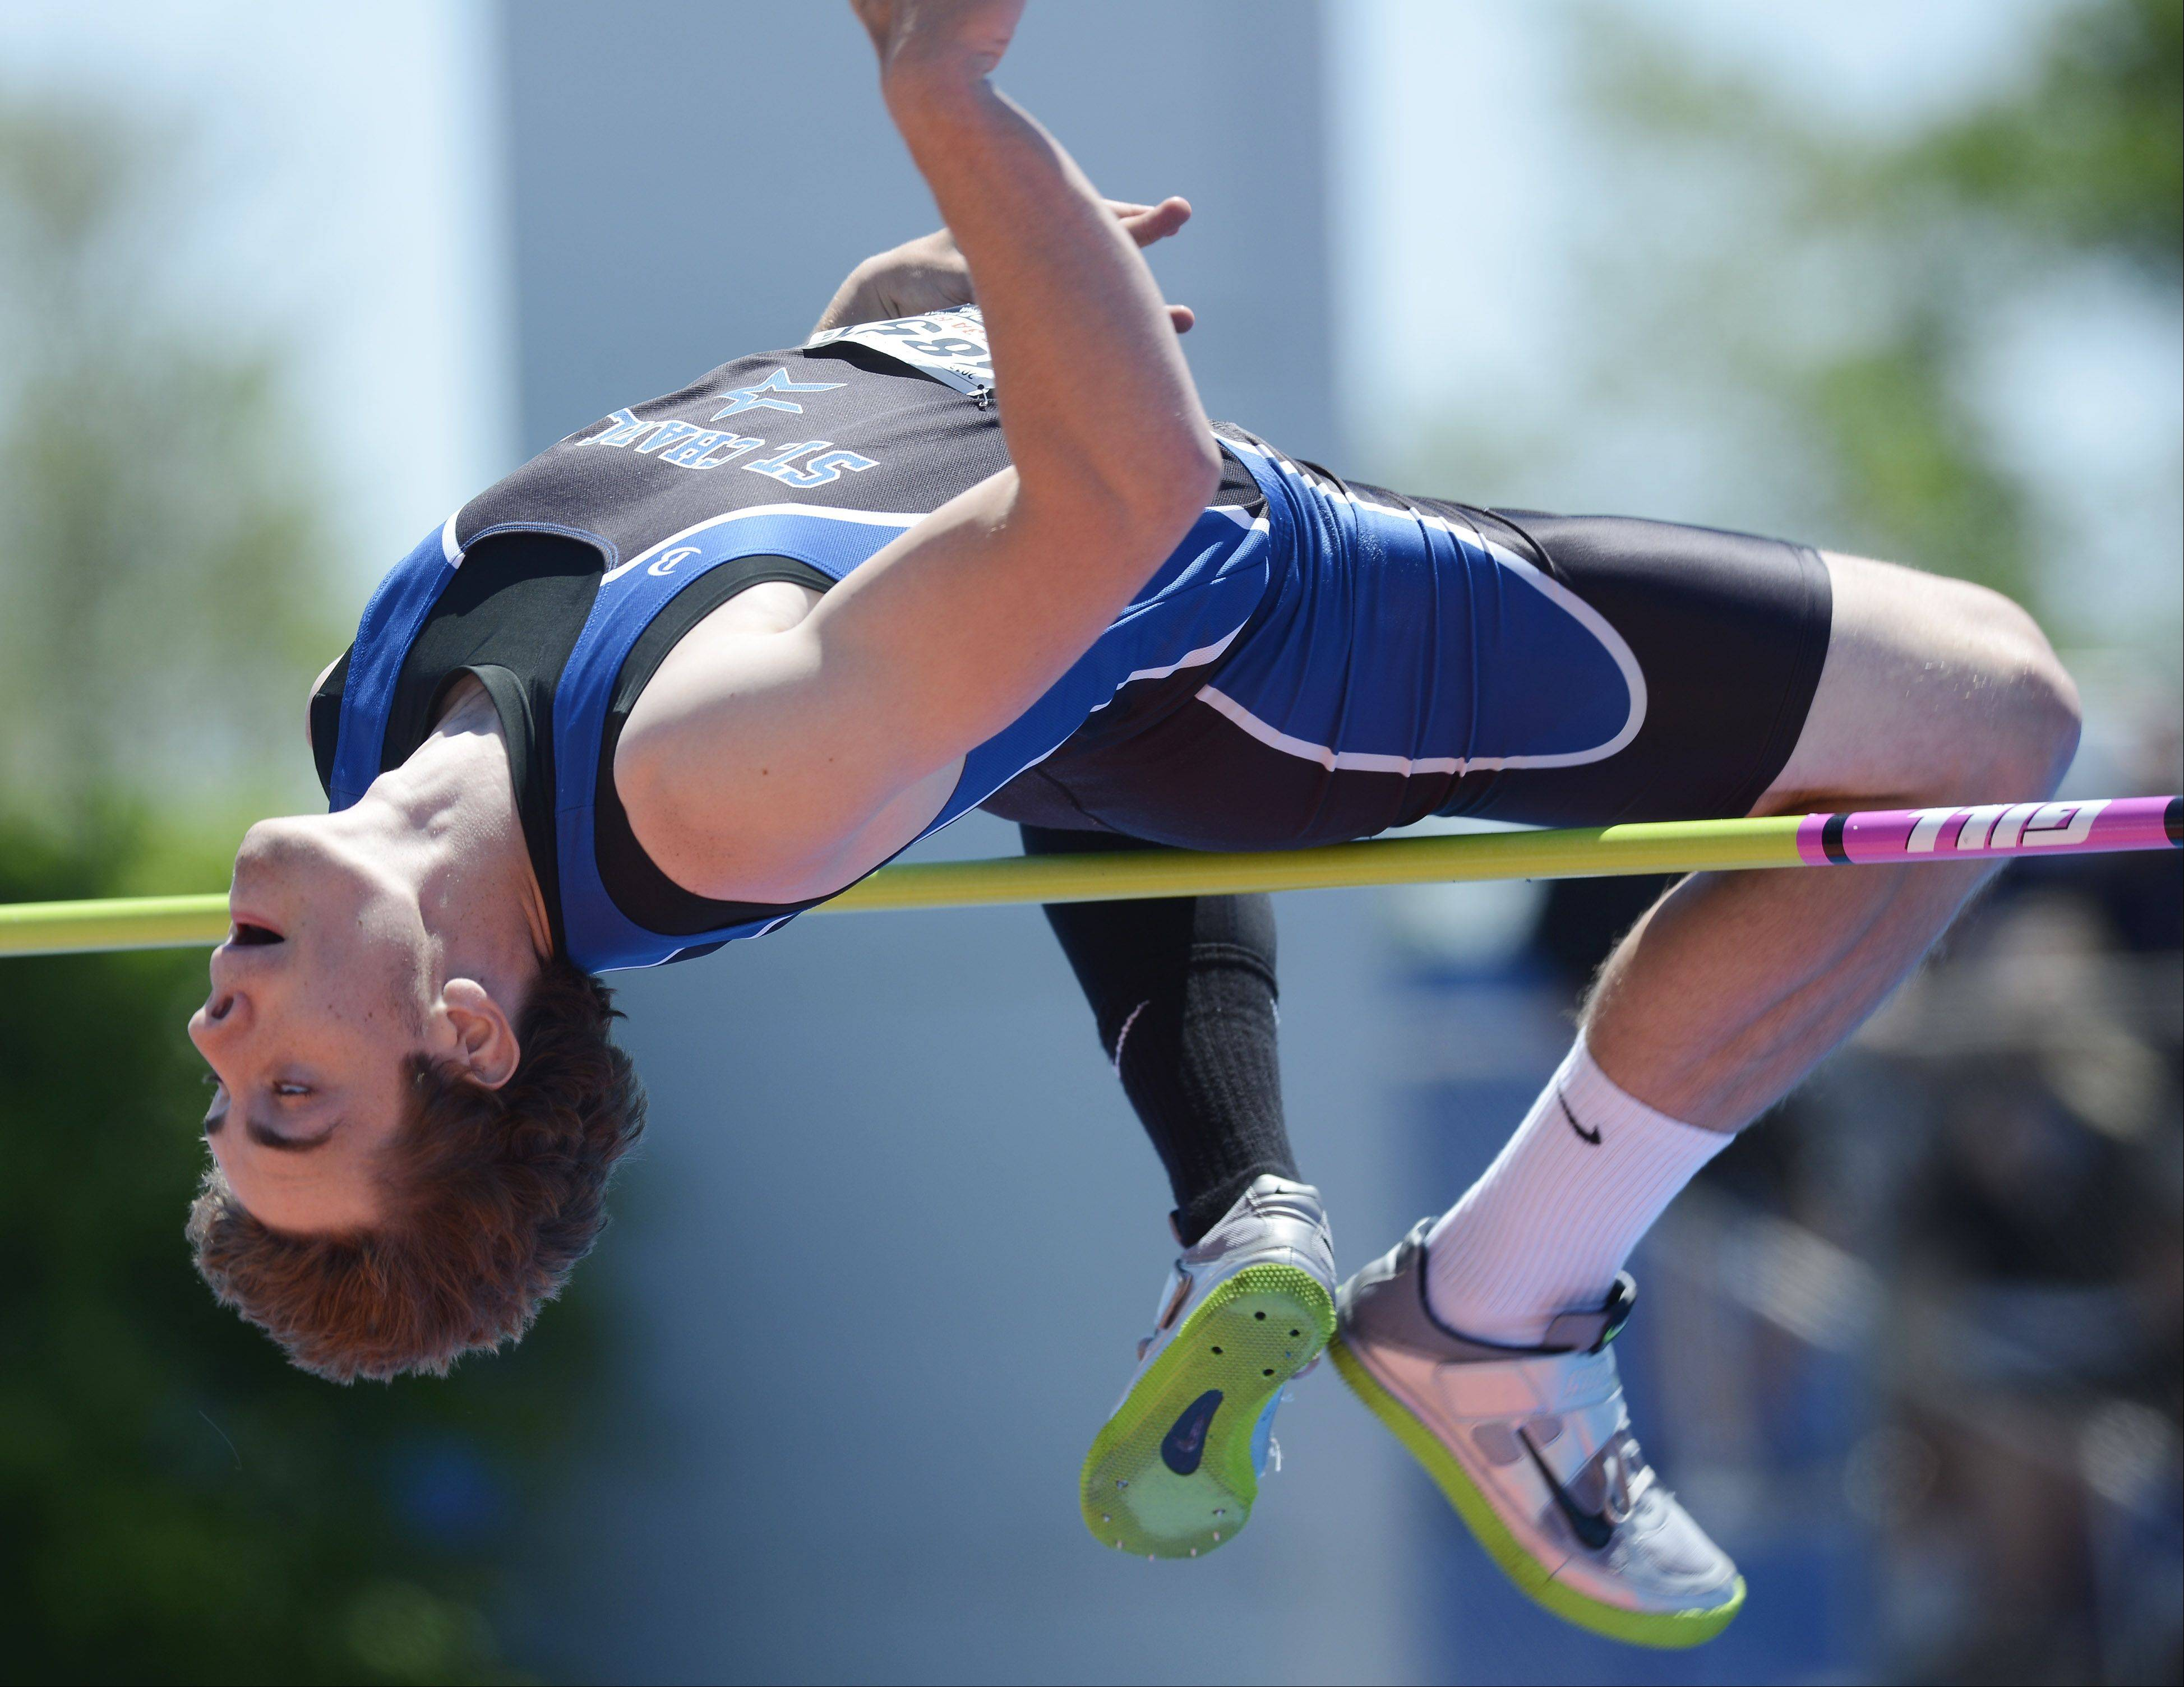 Erik Miller of St. Charles North clears the bar in the Class 3A high jump during the boys track state meet preliminaries in Charleston on Friday.